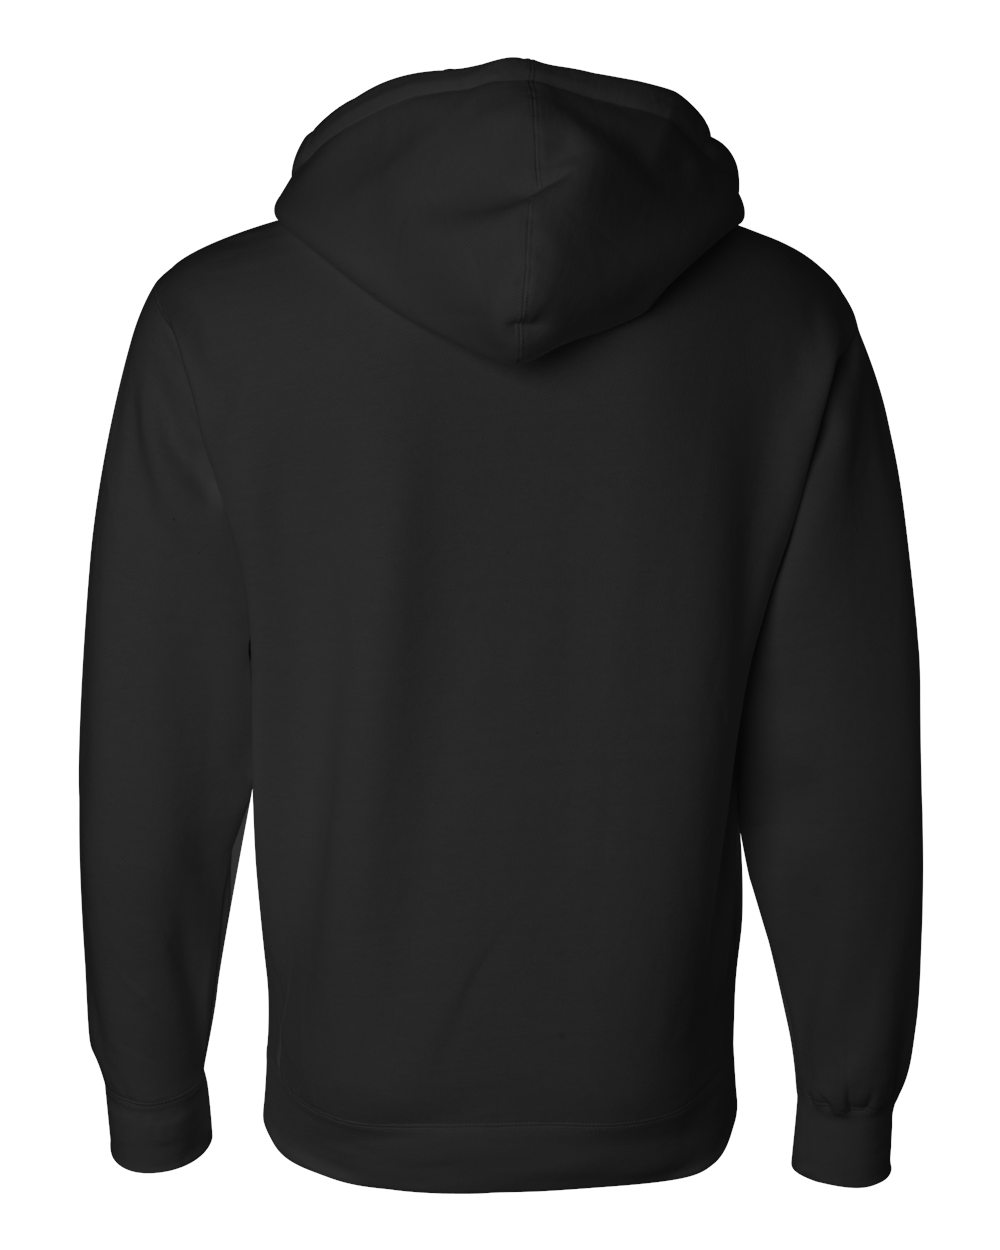 Independent-Trading-Co-Mens-Hooded-Pullover-Sweatshirt-IND4000-up-to-3XL miniature 13